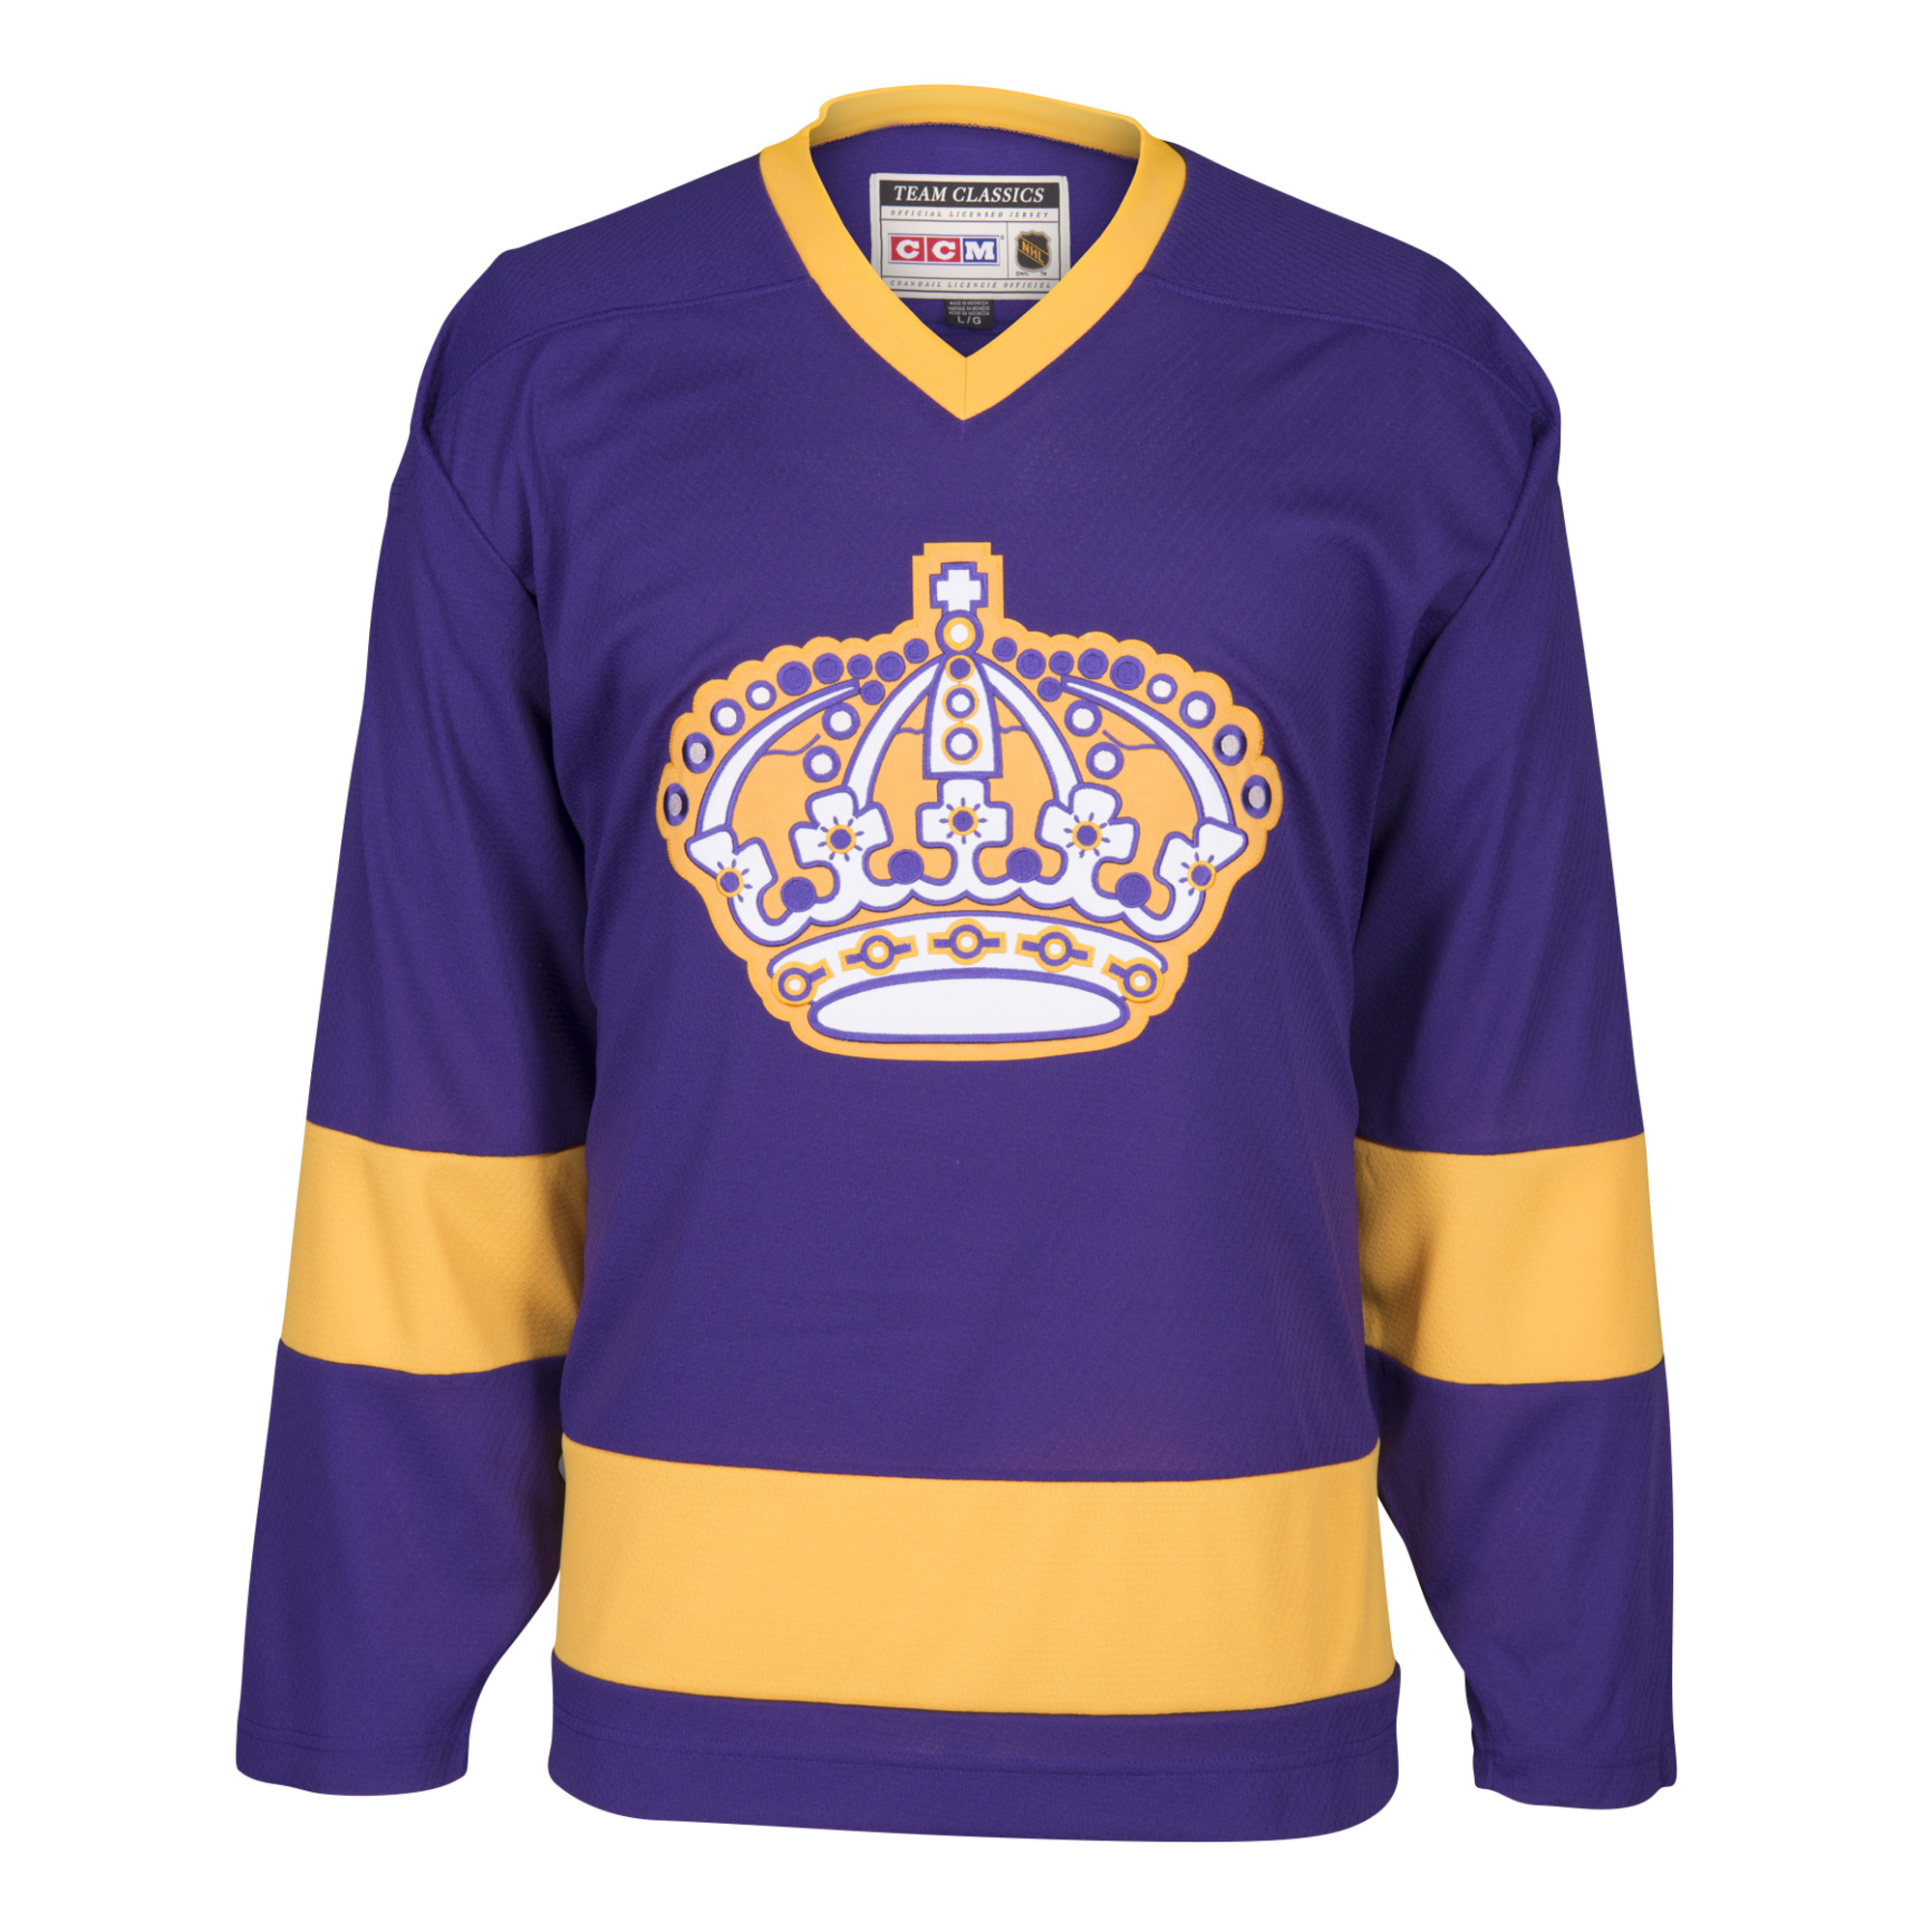 size 40 52299 41adf los angeles kings purple jersey